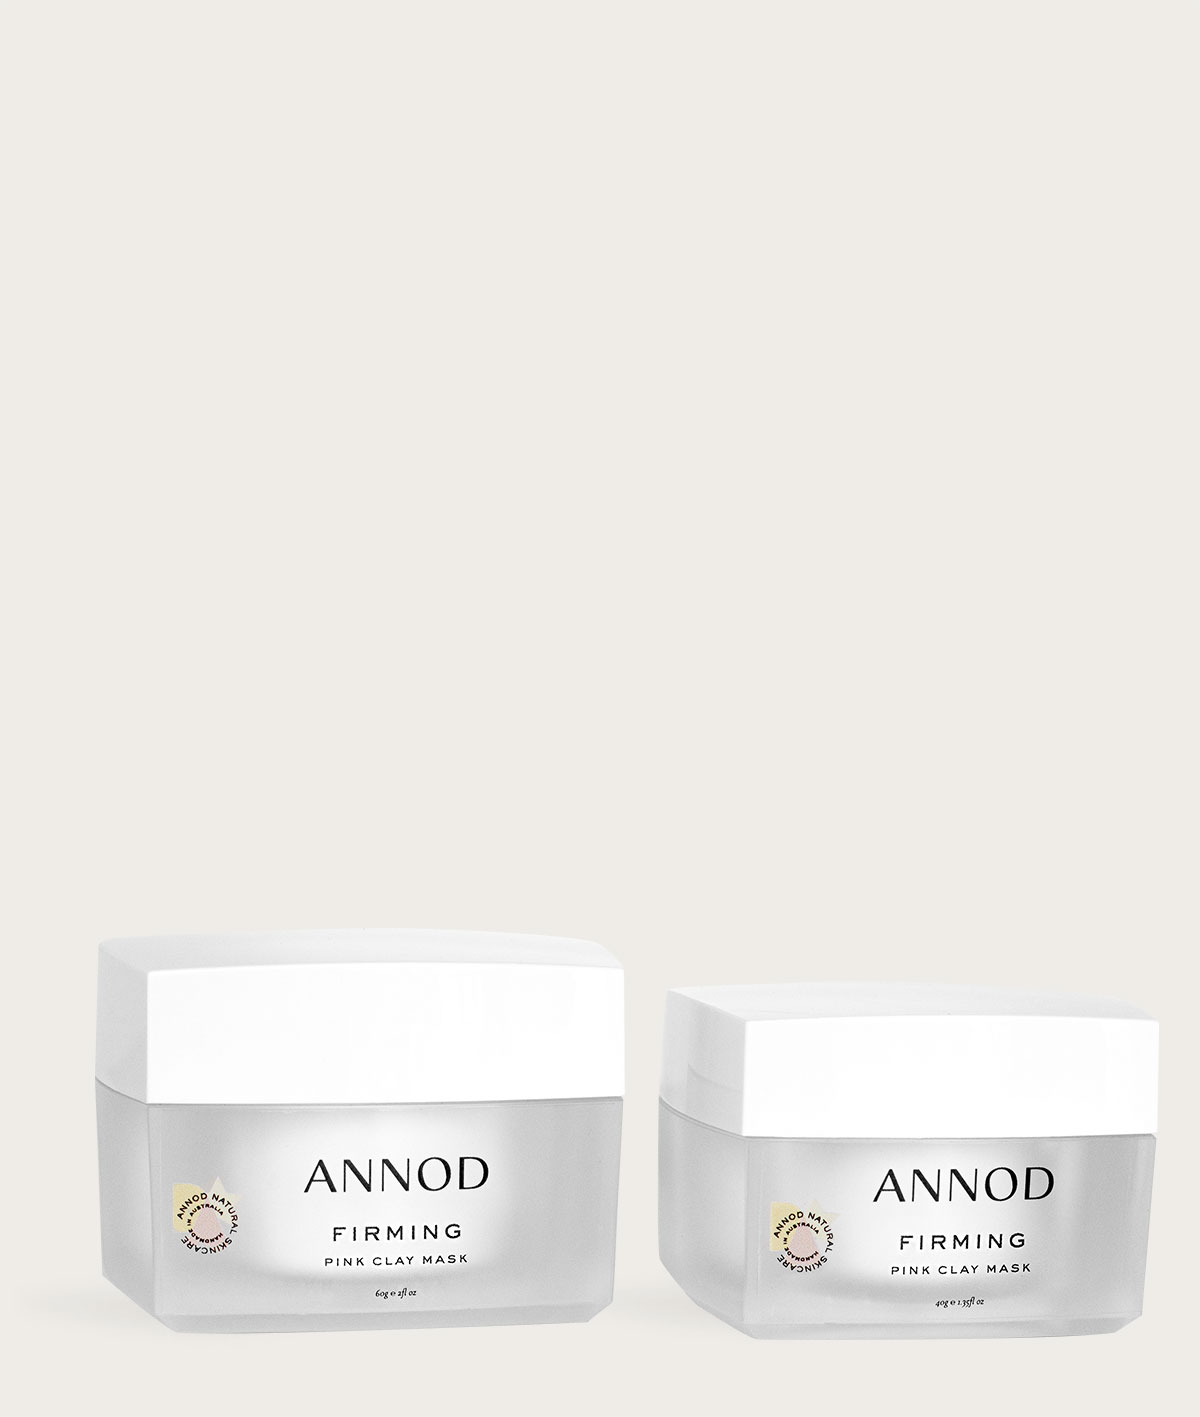 A set of Firming Pink Clay Mask 60g and 40g